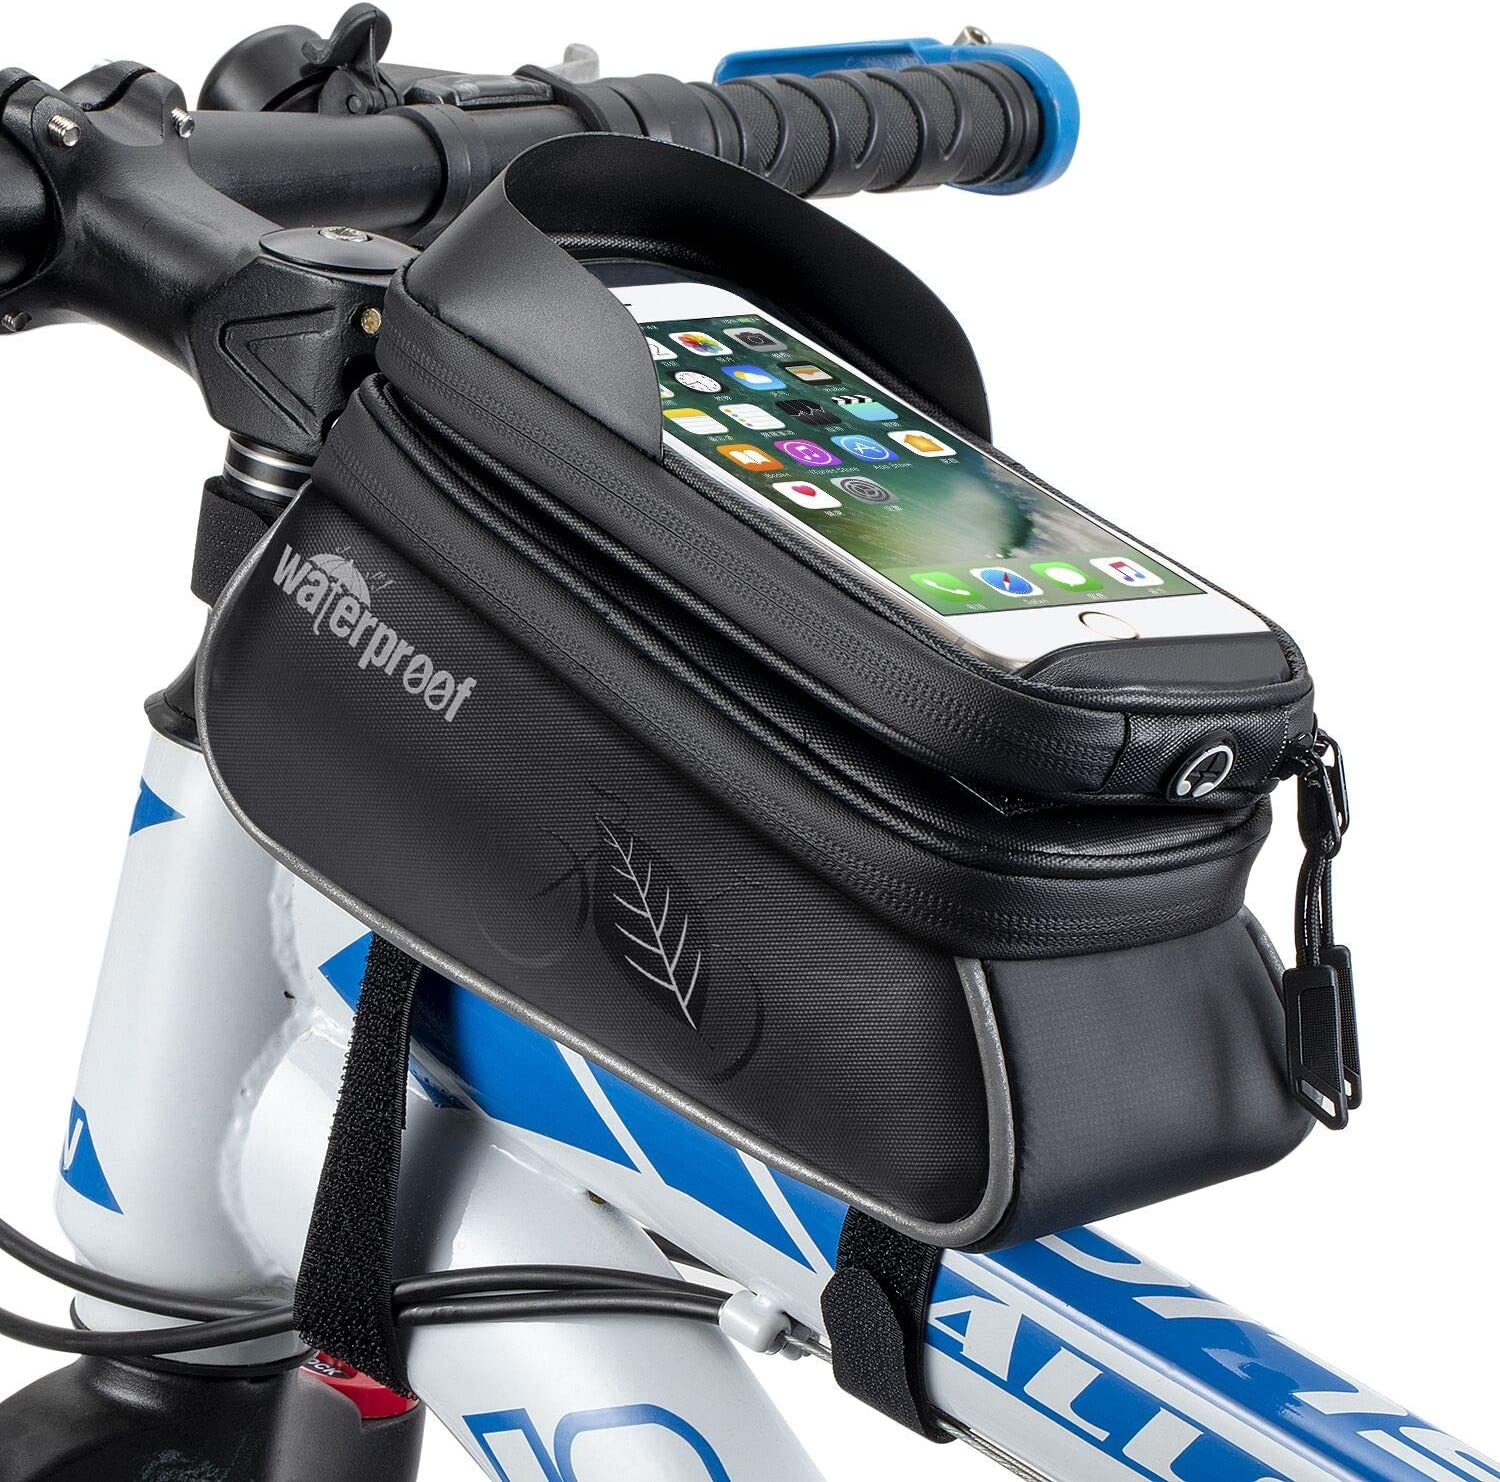 WOTOW Bicycle Phone Mount Bags, Waterproof Bike Front Frame Top Tube Handlebar MTB Cycling Bag with TPU Touch Screen Cell Phone Holder, Fits for iphone7 8 Plus/XR/Xs Max Samsung Huawei Up to 6.6""